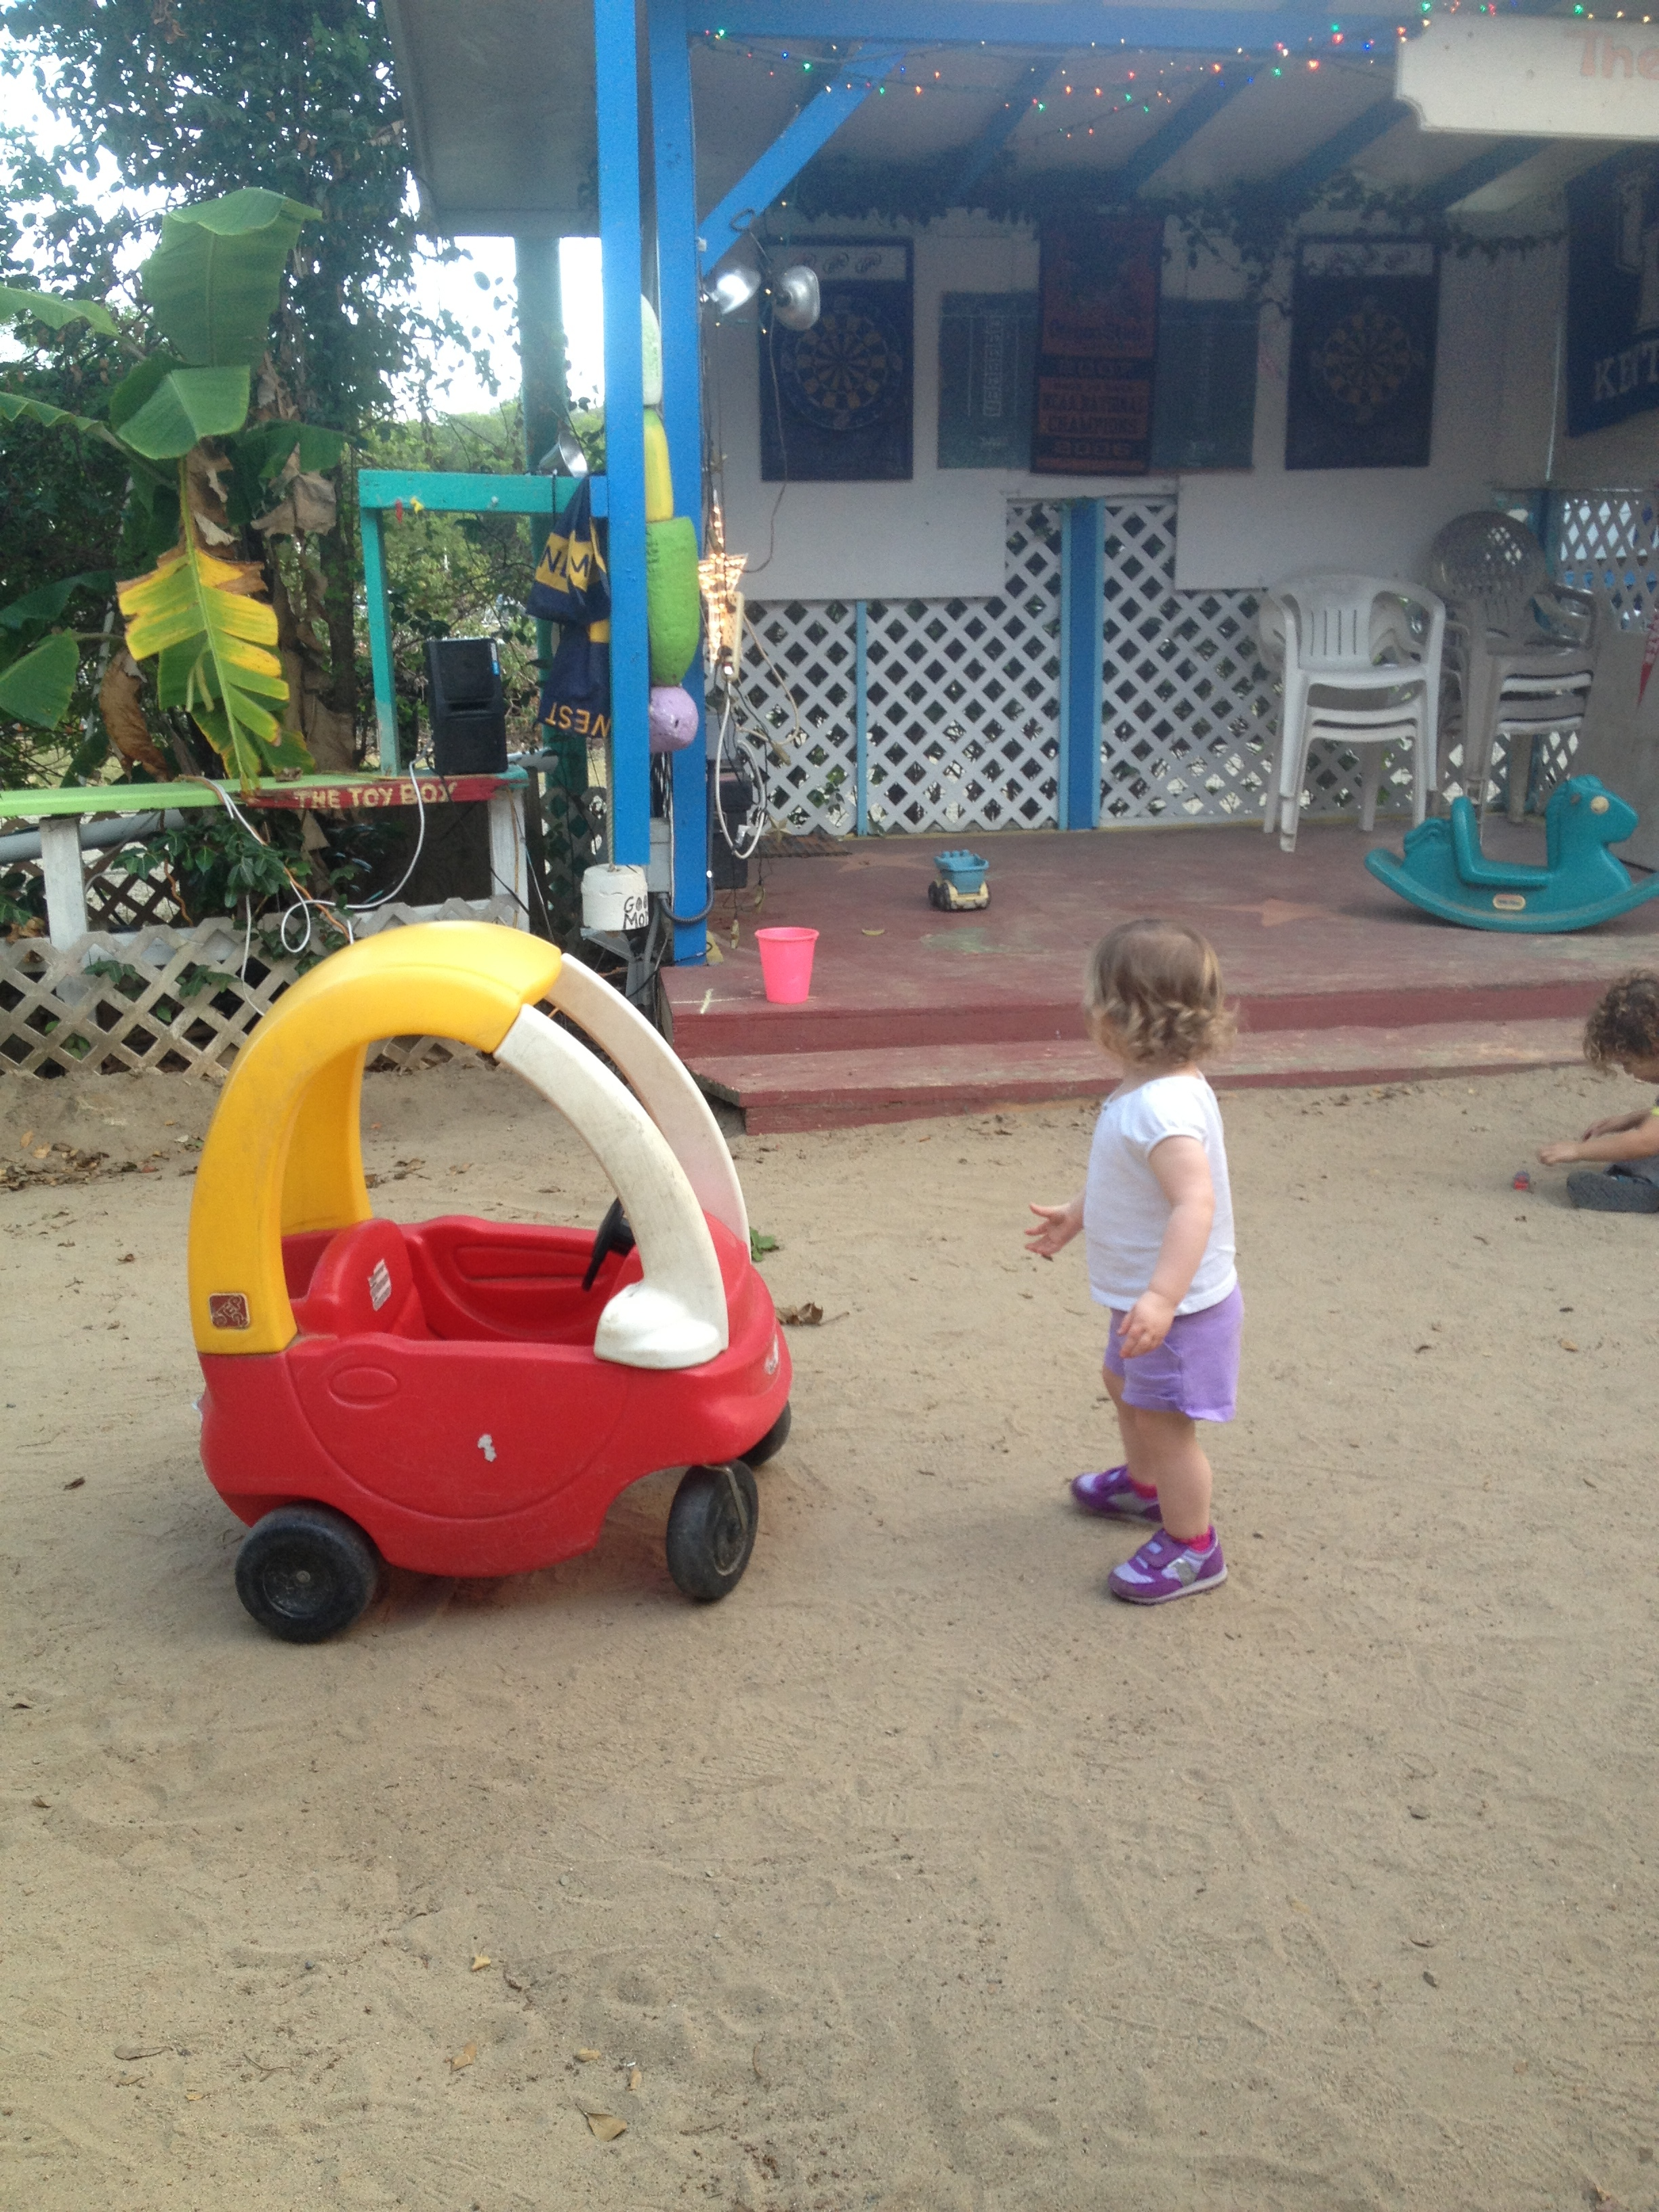 Elenor admires the Cozy Coupe at Skinny Legs.